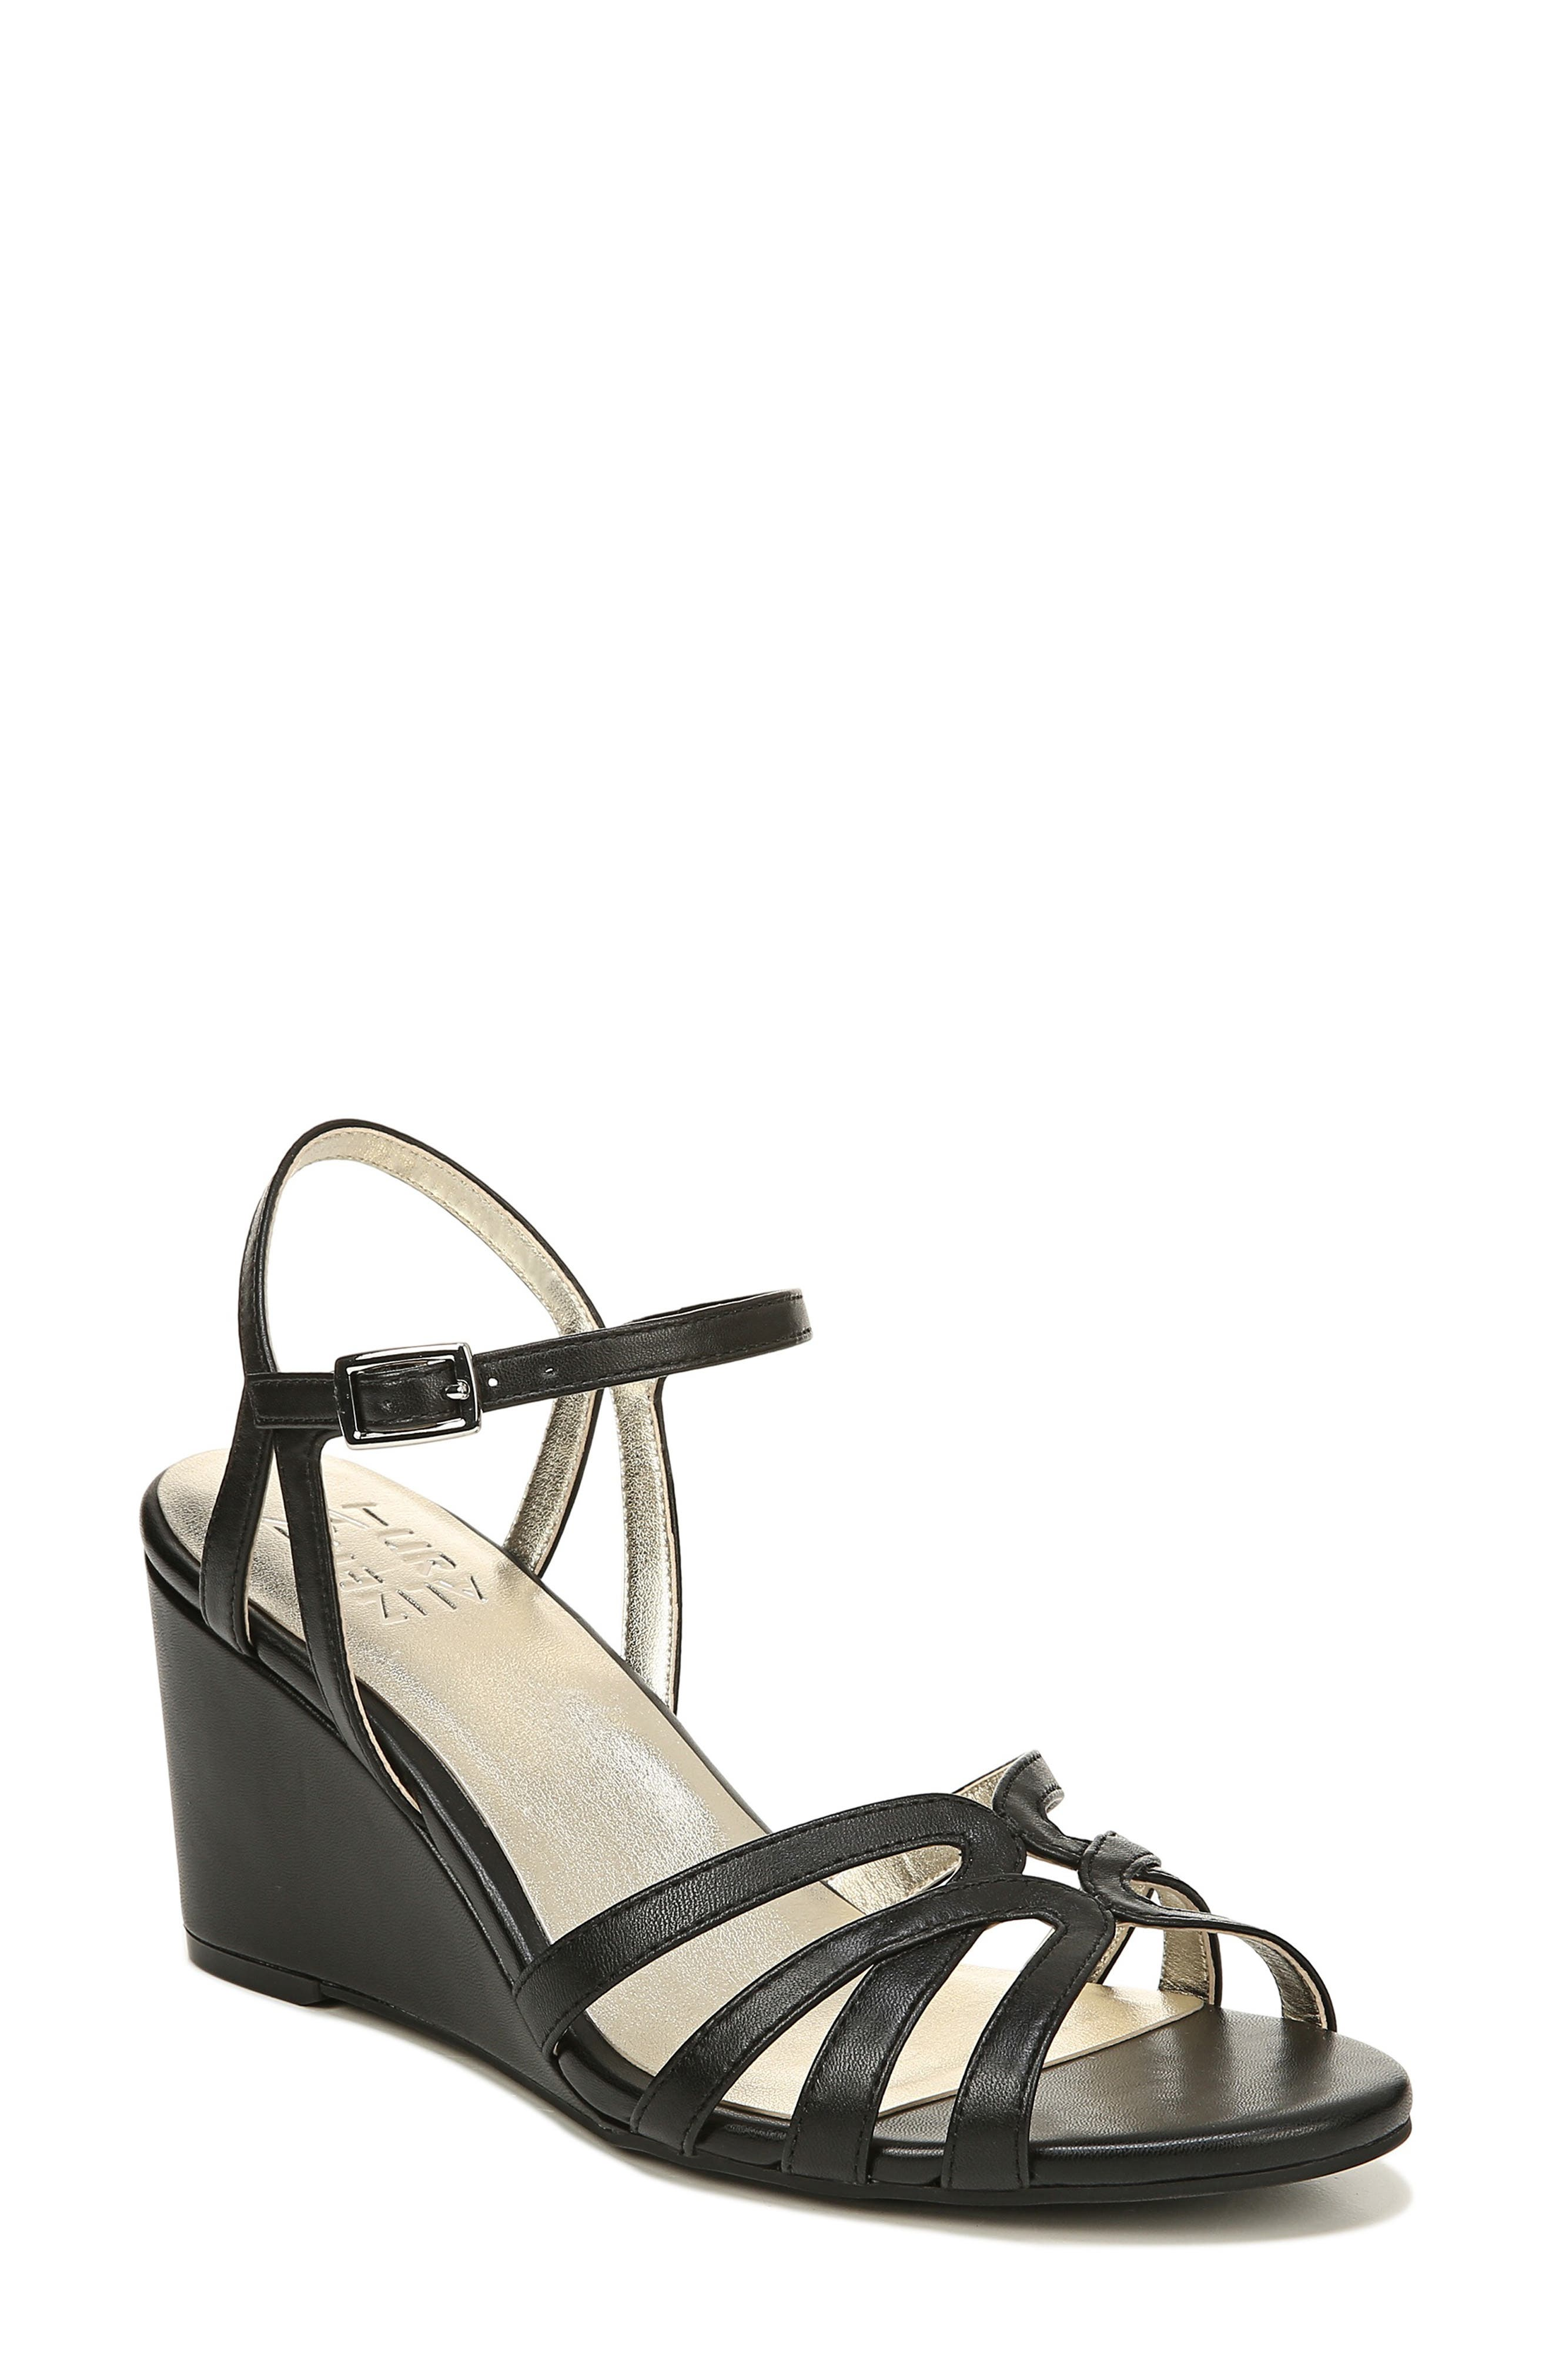 NATURALIZER Gio Wedge Sandal, Main, color, BLACK LEATHER